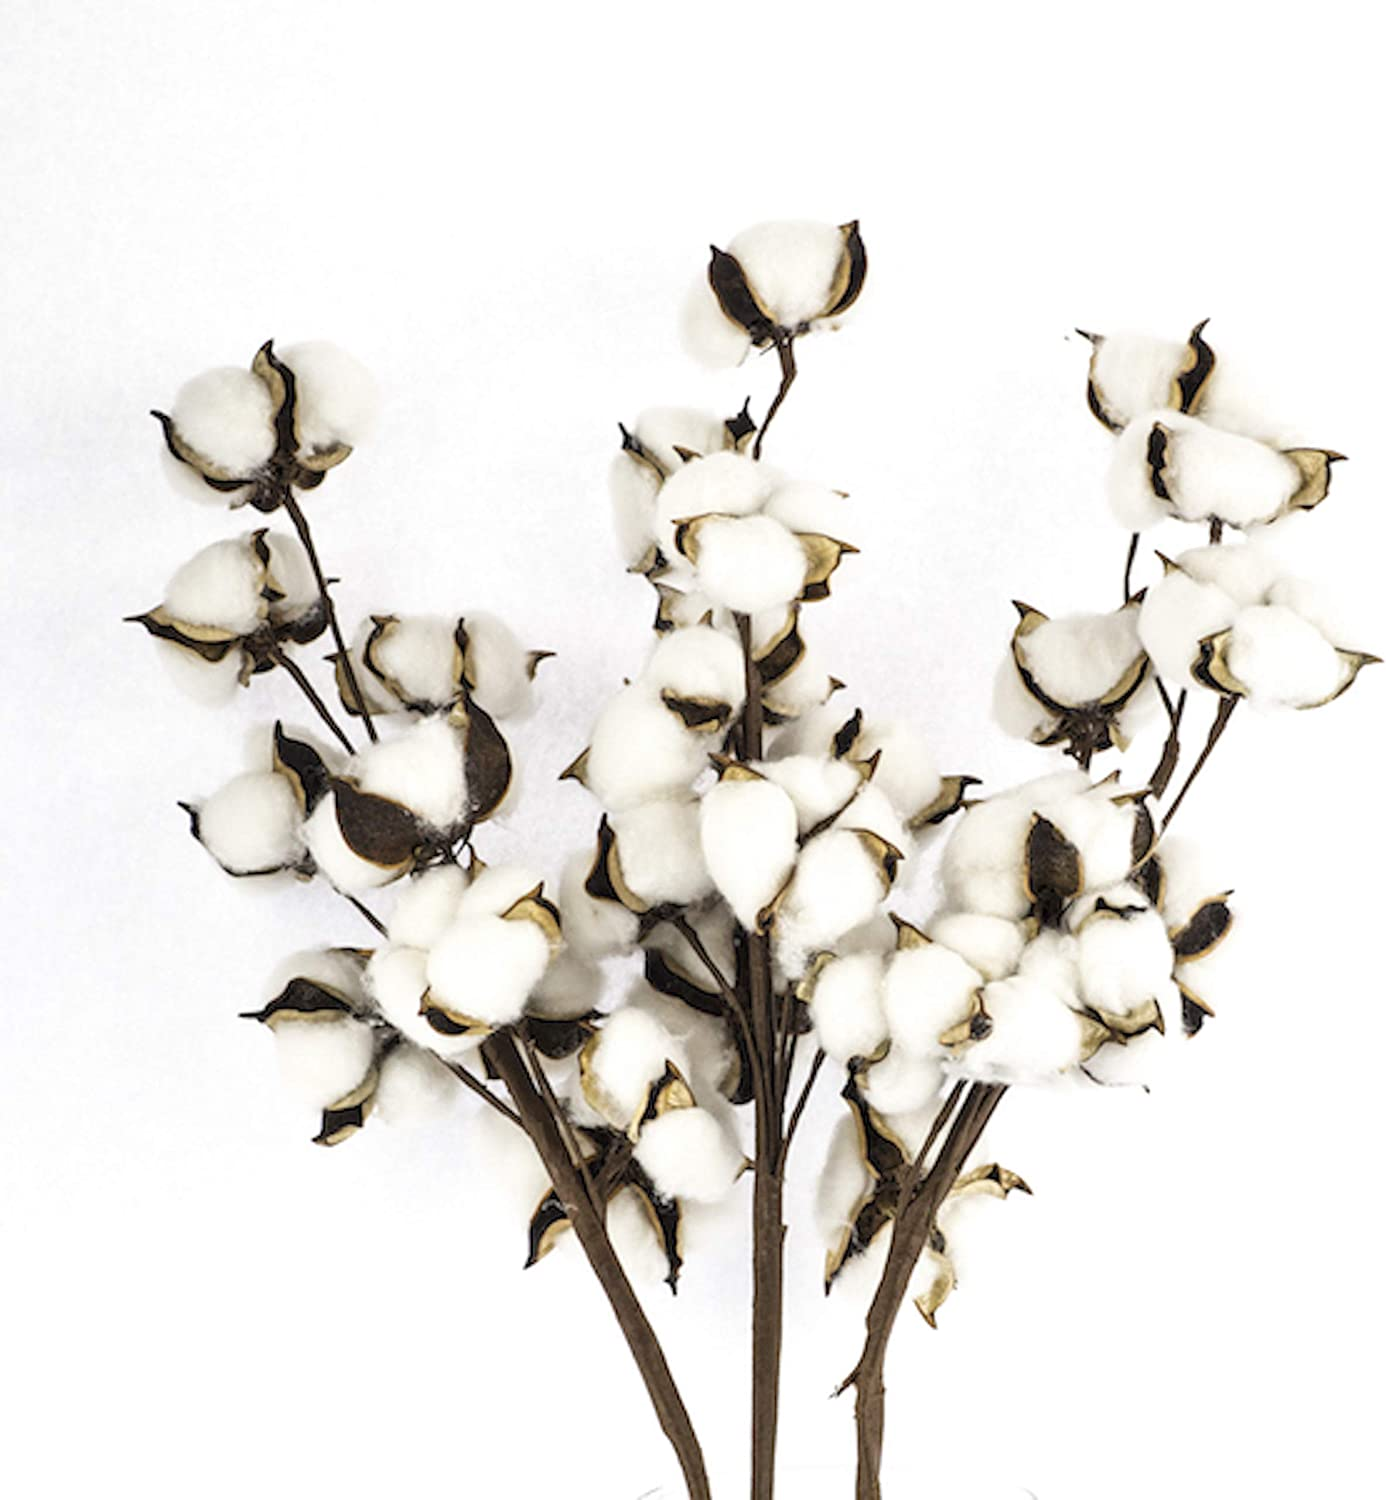 Antea Decor Cotton Stems 6 Pack - Rustic Cotton Flowers - Perfect for Farmhouse Summer Decor - 10 Balls Per Stem - 21 Inches